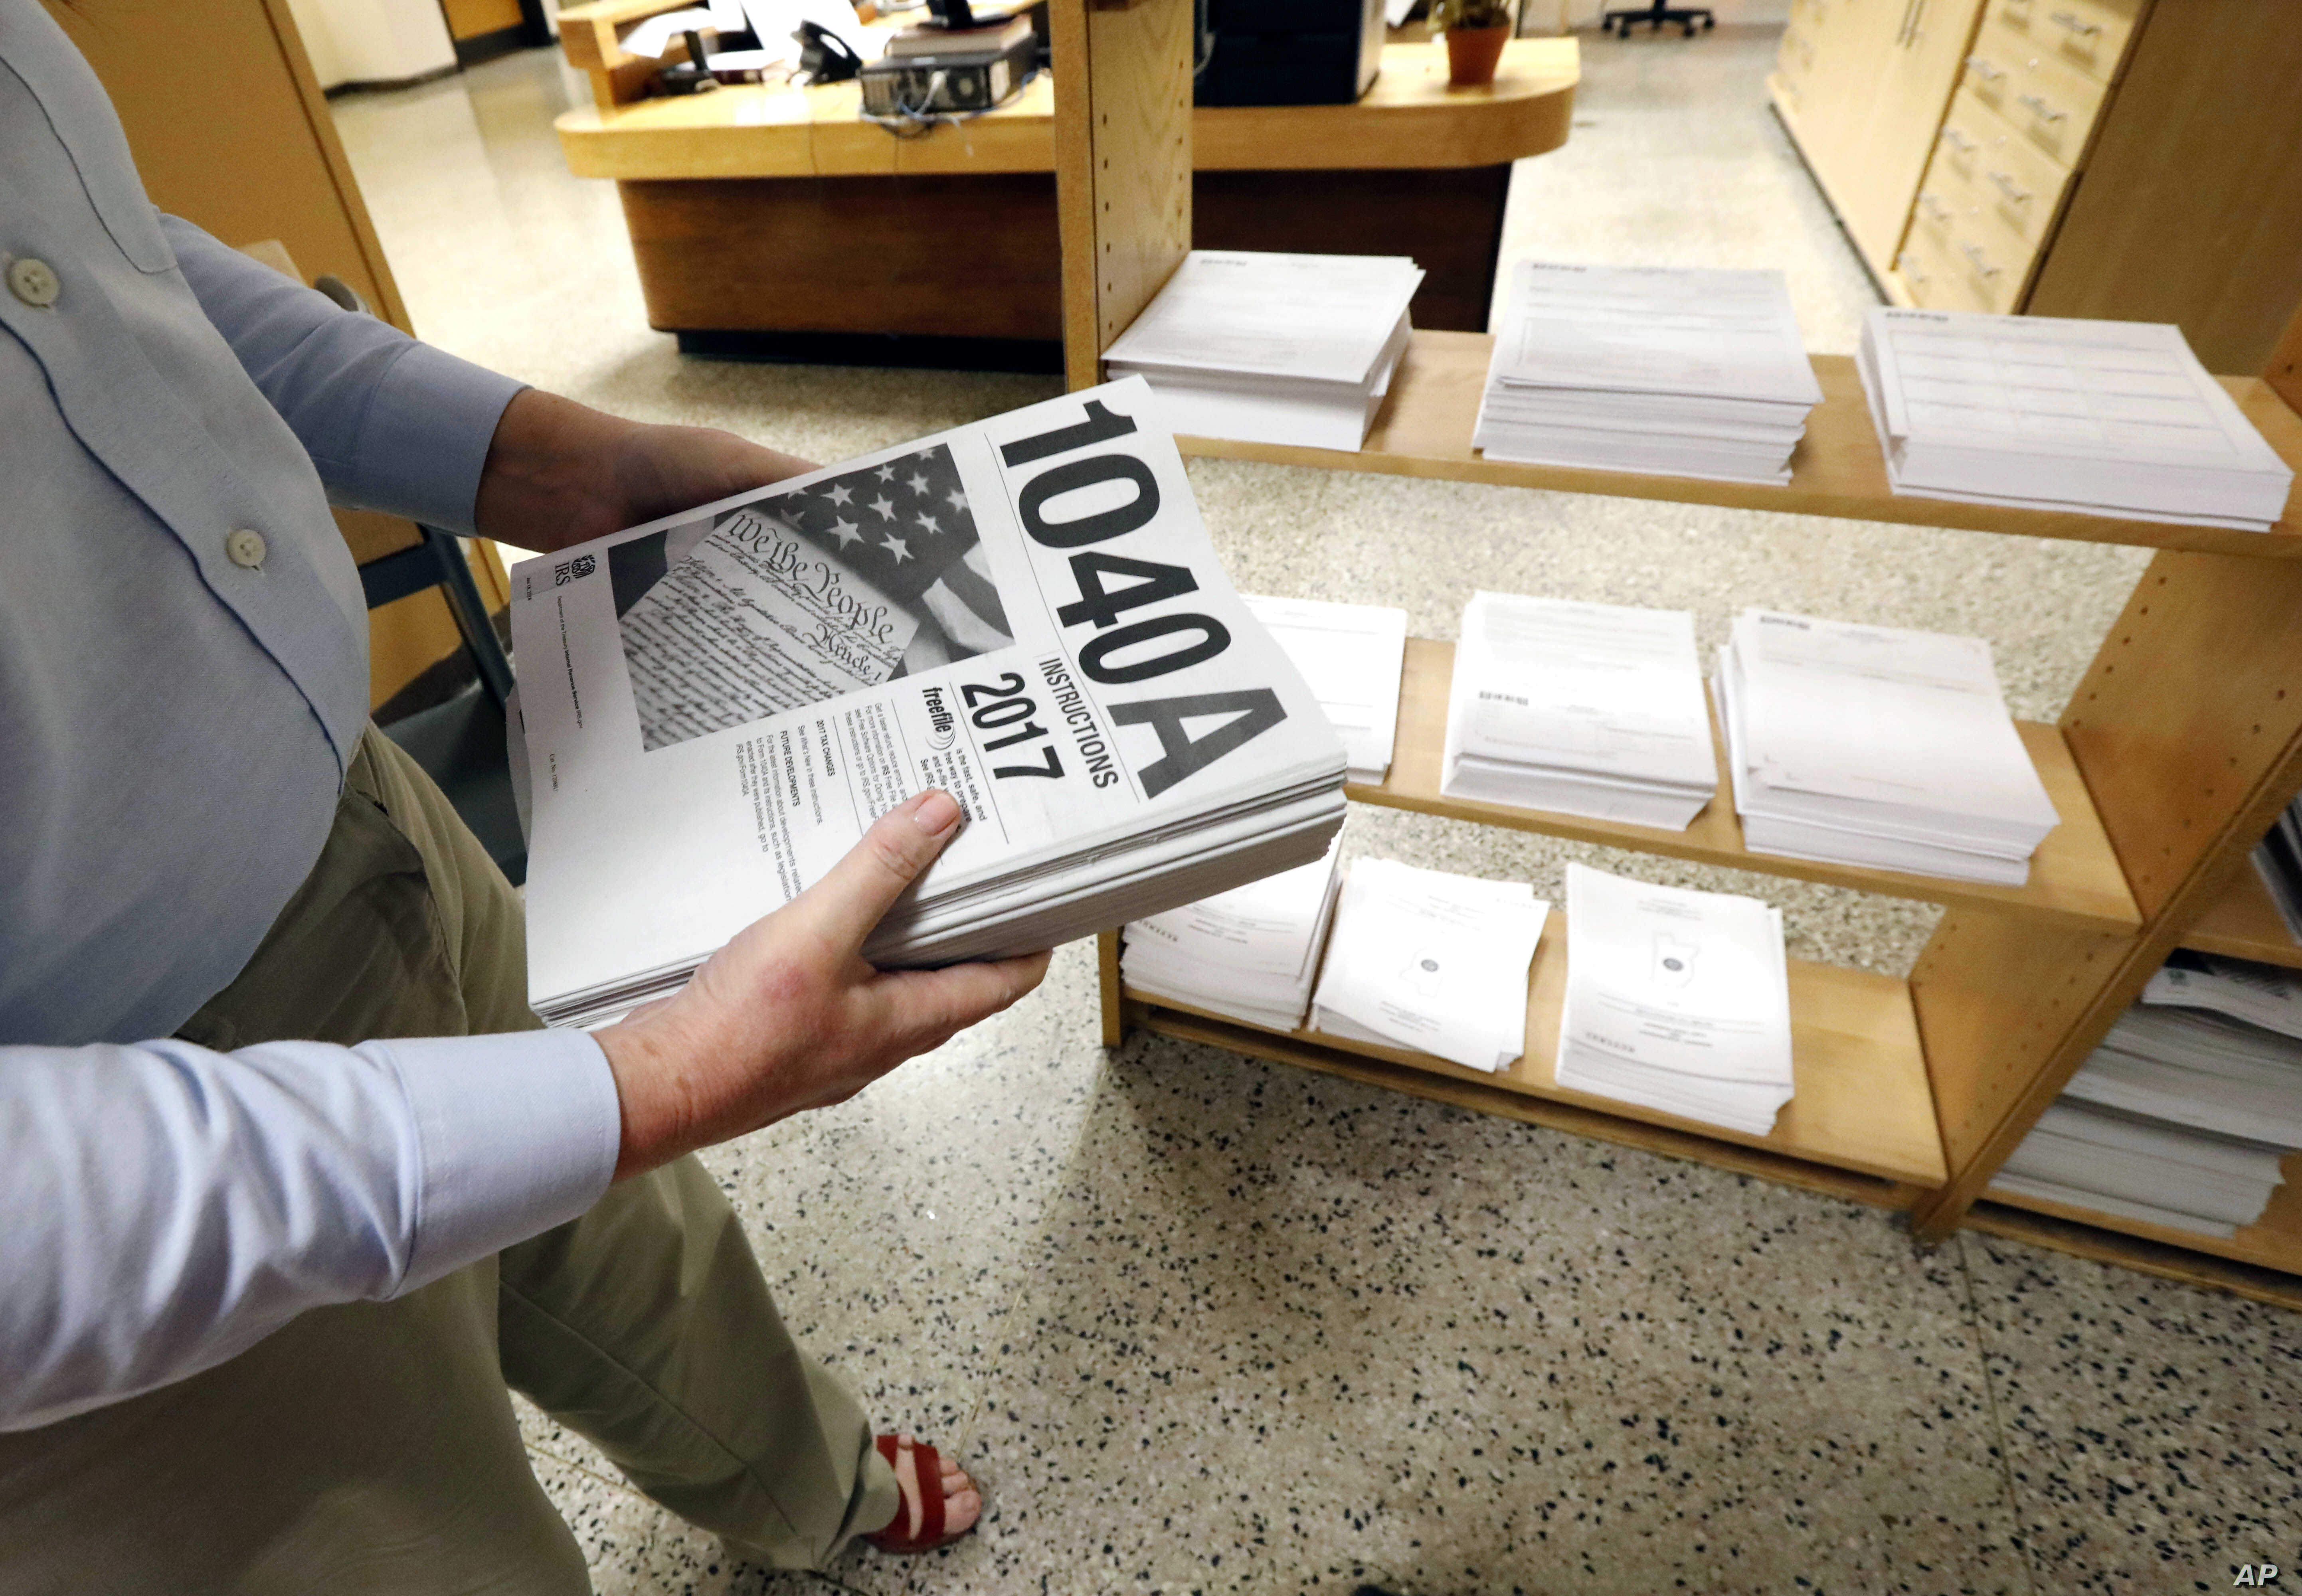 FILE - A worker adds federal tax filing information to shelves at the Eudora Welty Library in Jackson, Miss., Feb. 15, 2018.